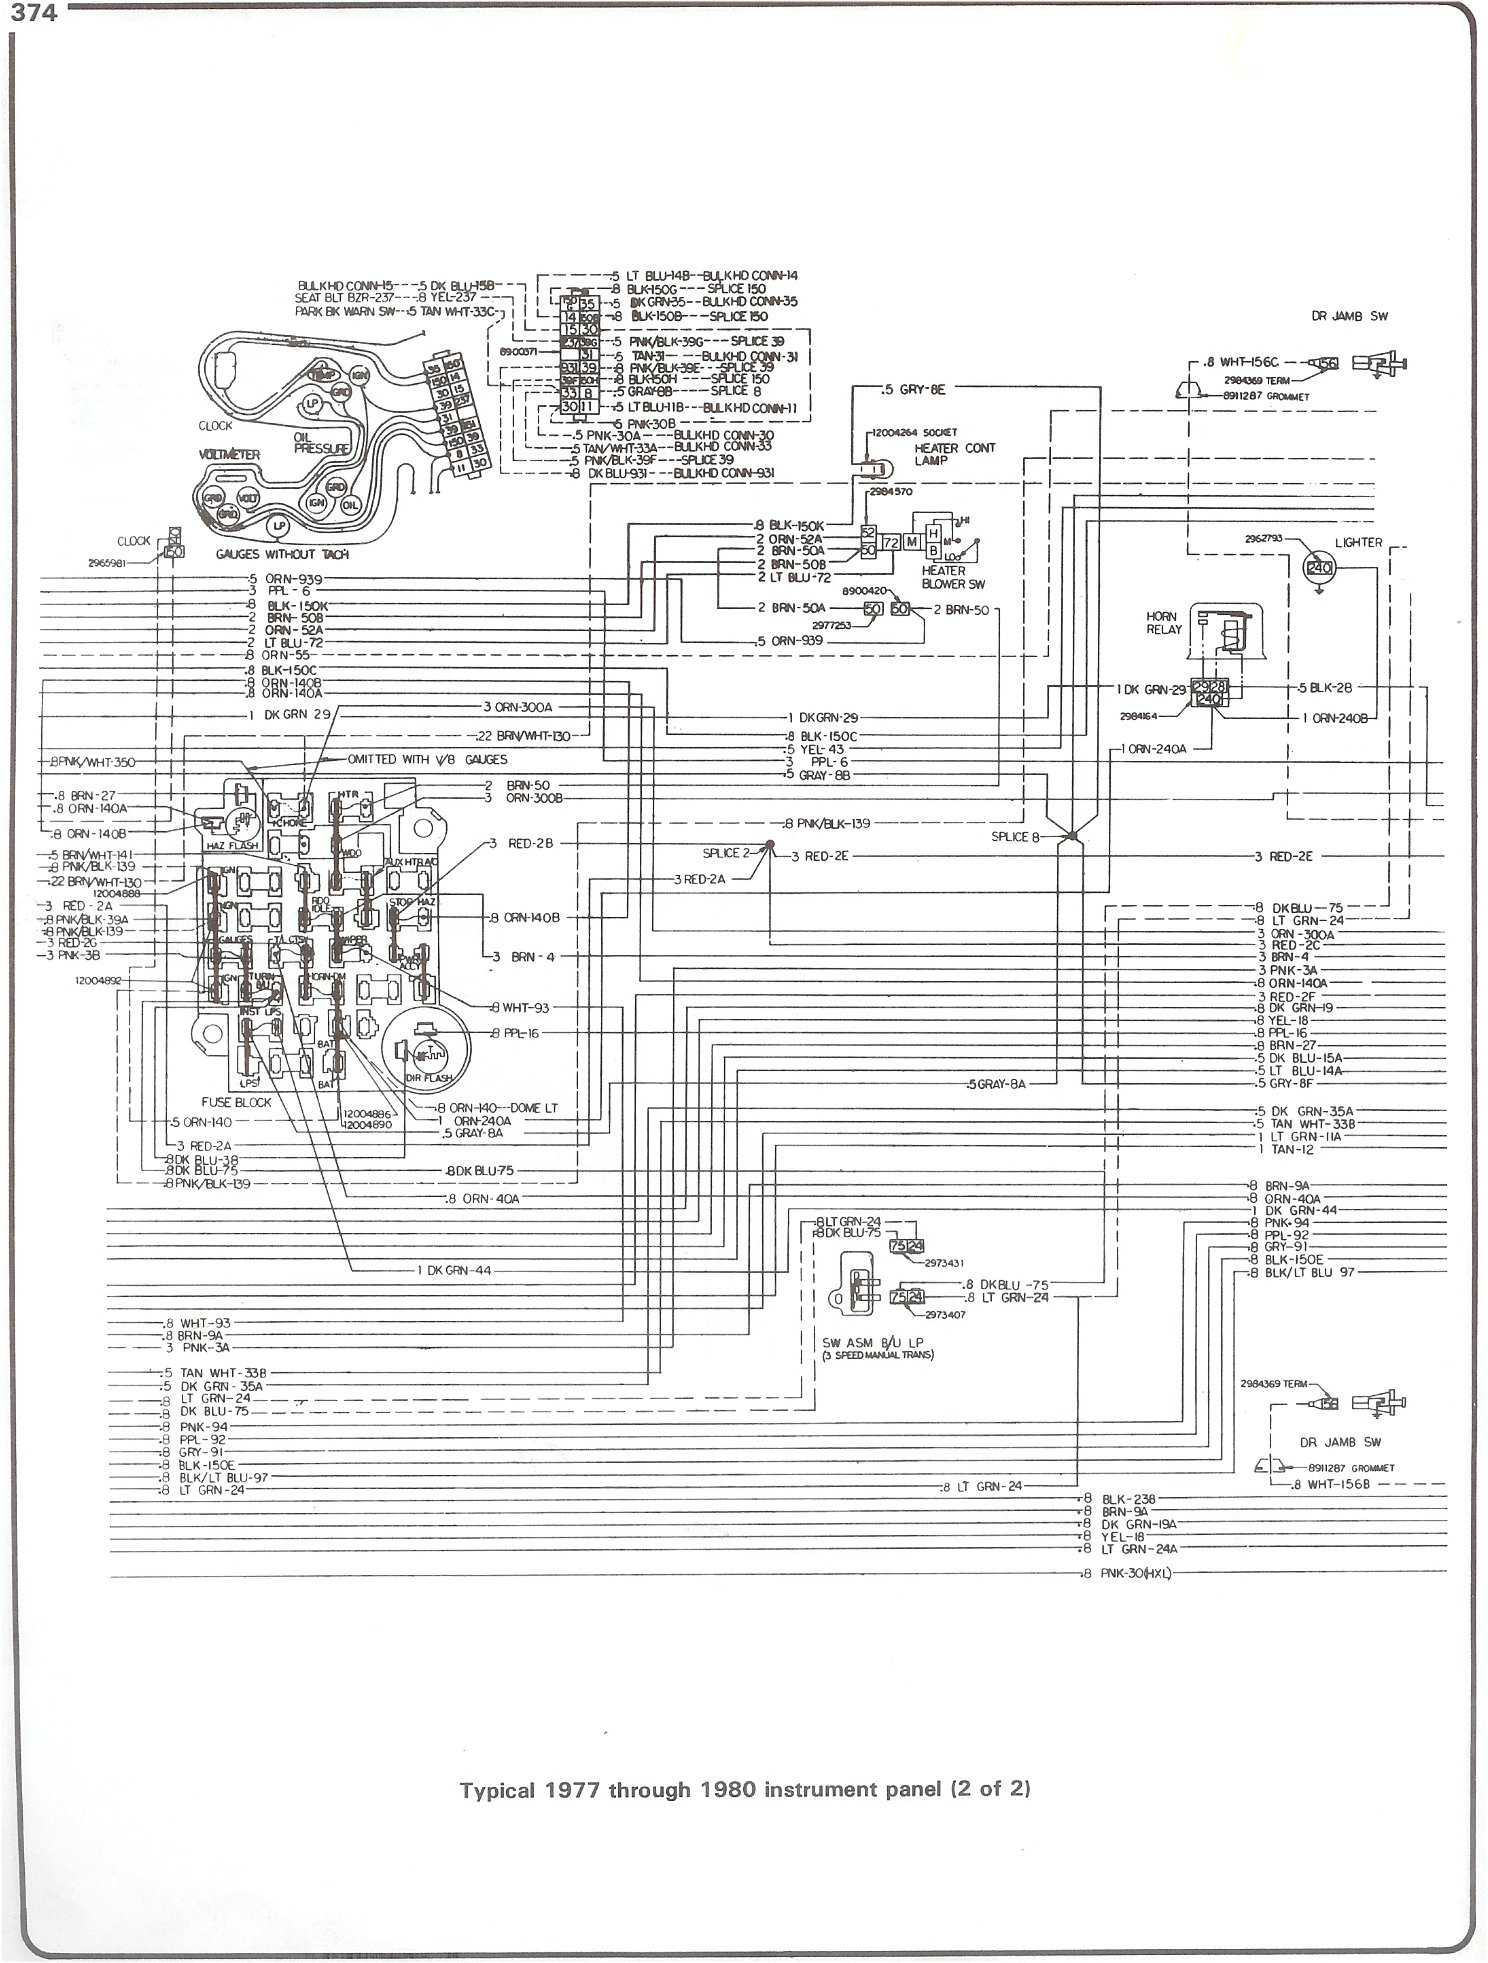 1979 Gmc Wiring Diagram Electrical General Complete 73 87 Diagrams Rh Forum 87chevytrucks Com